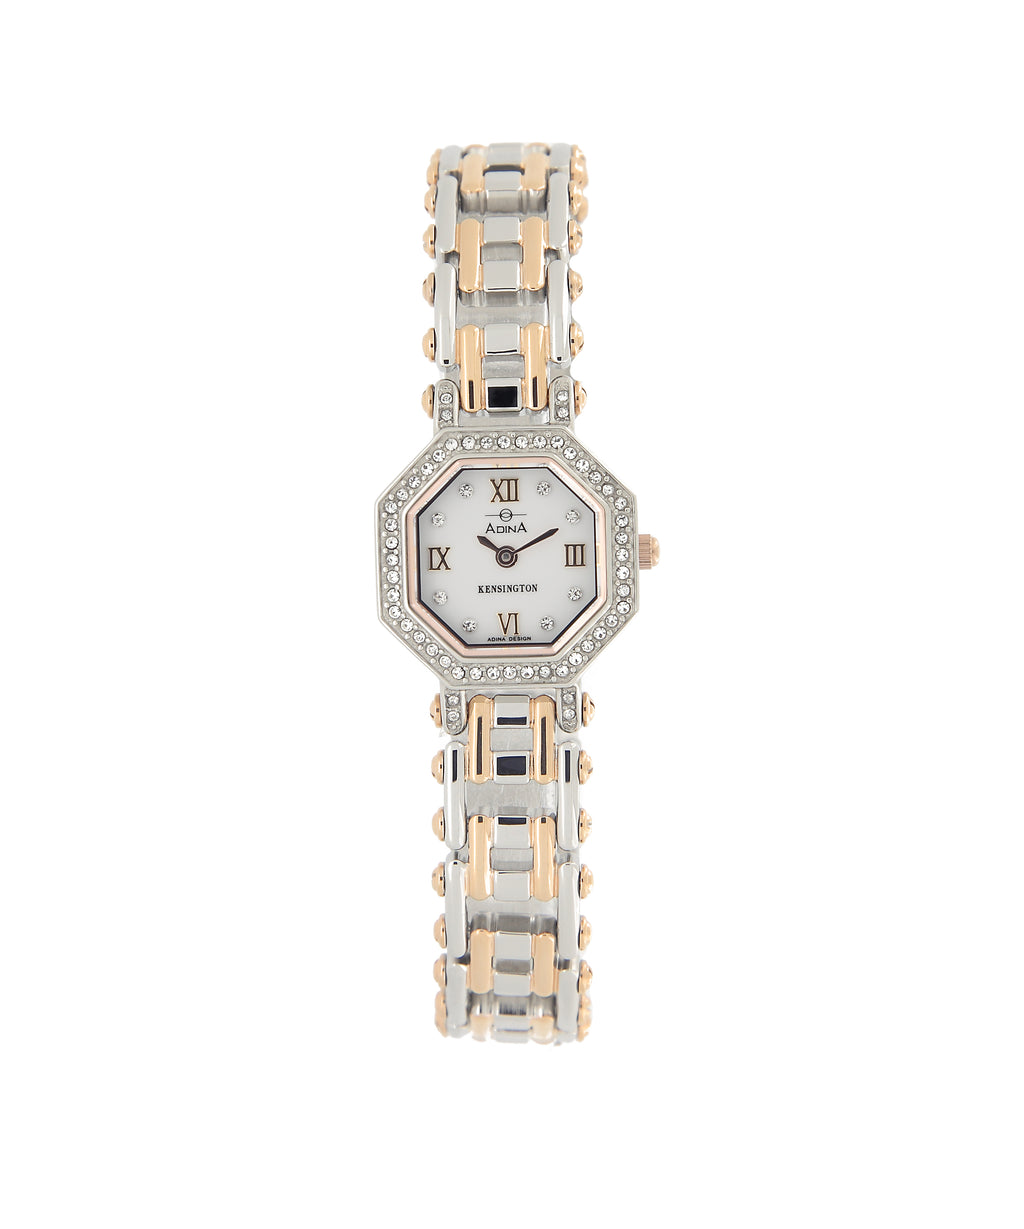 Adina Kensington Swaroski Set Dress Watch 200244 M1Xb